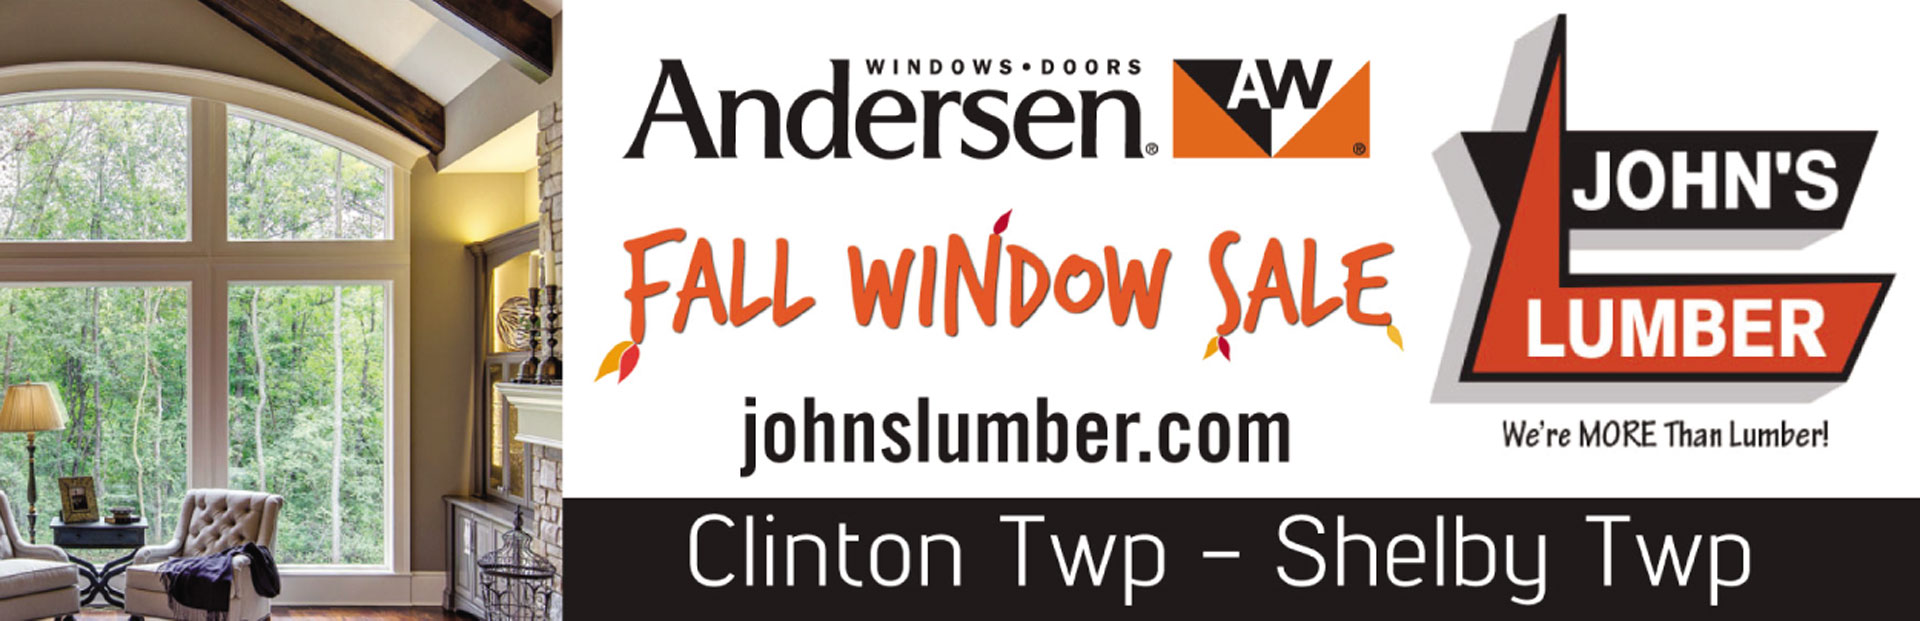 Anderson Window Sale